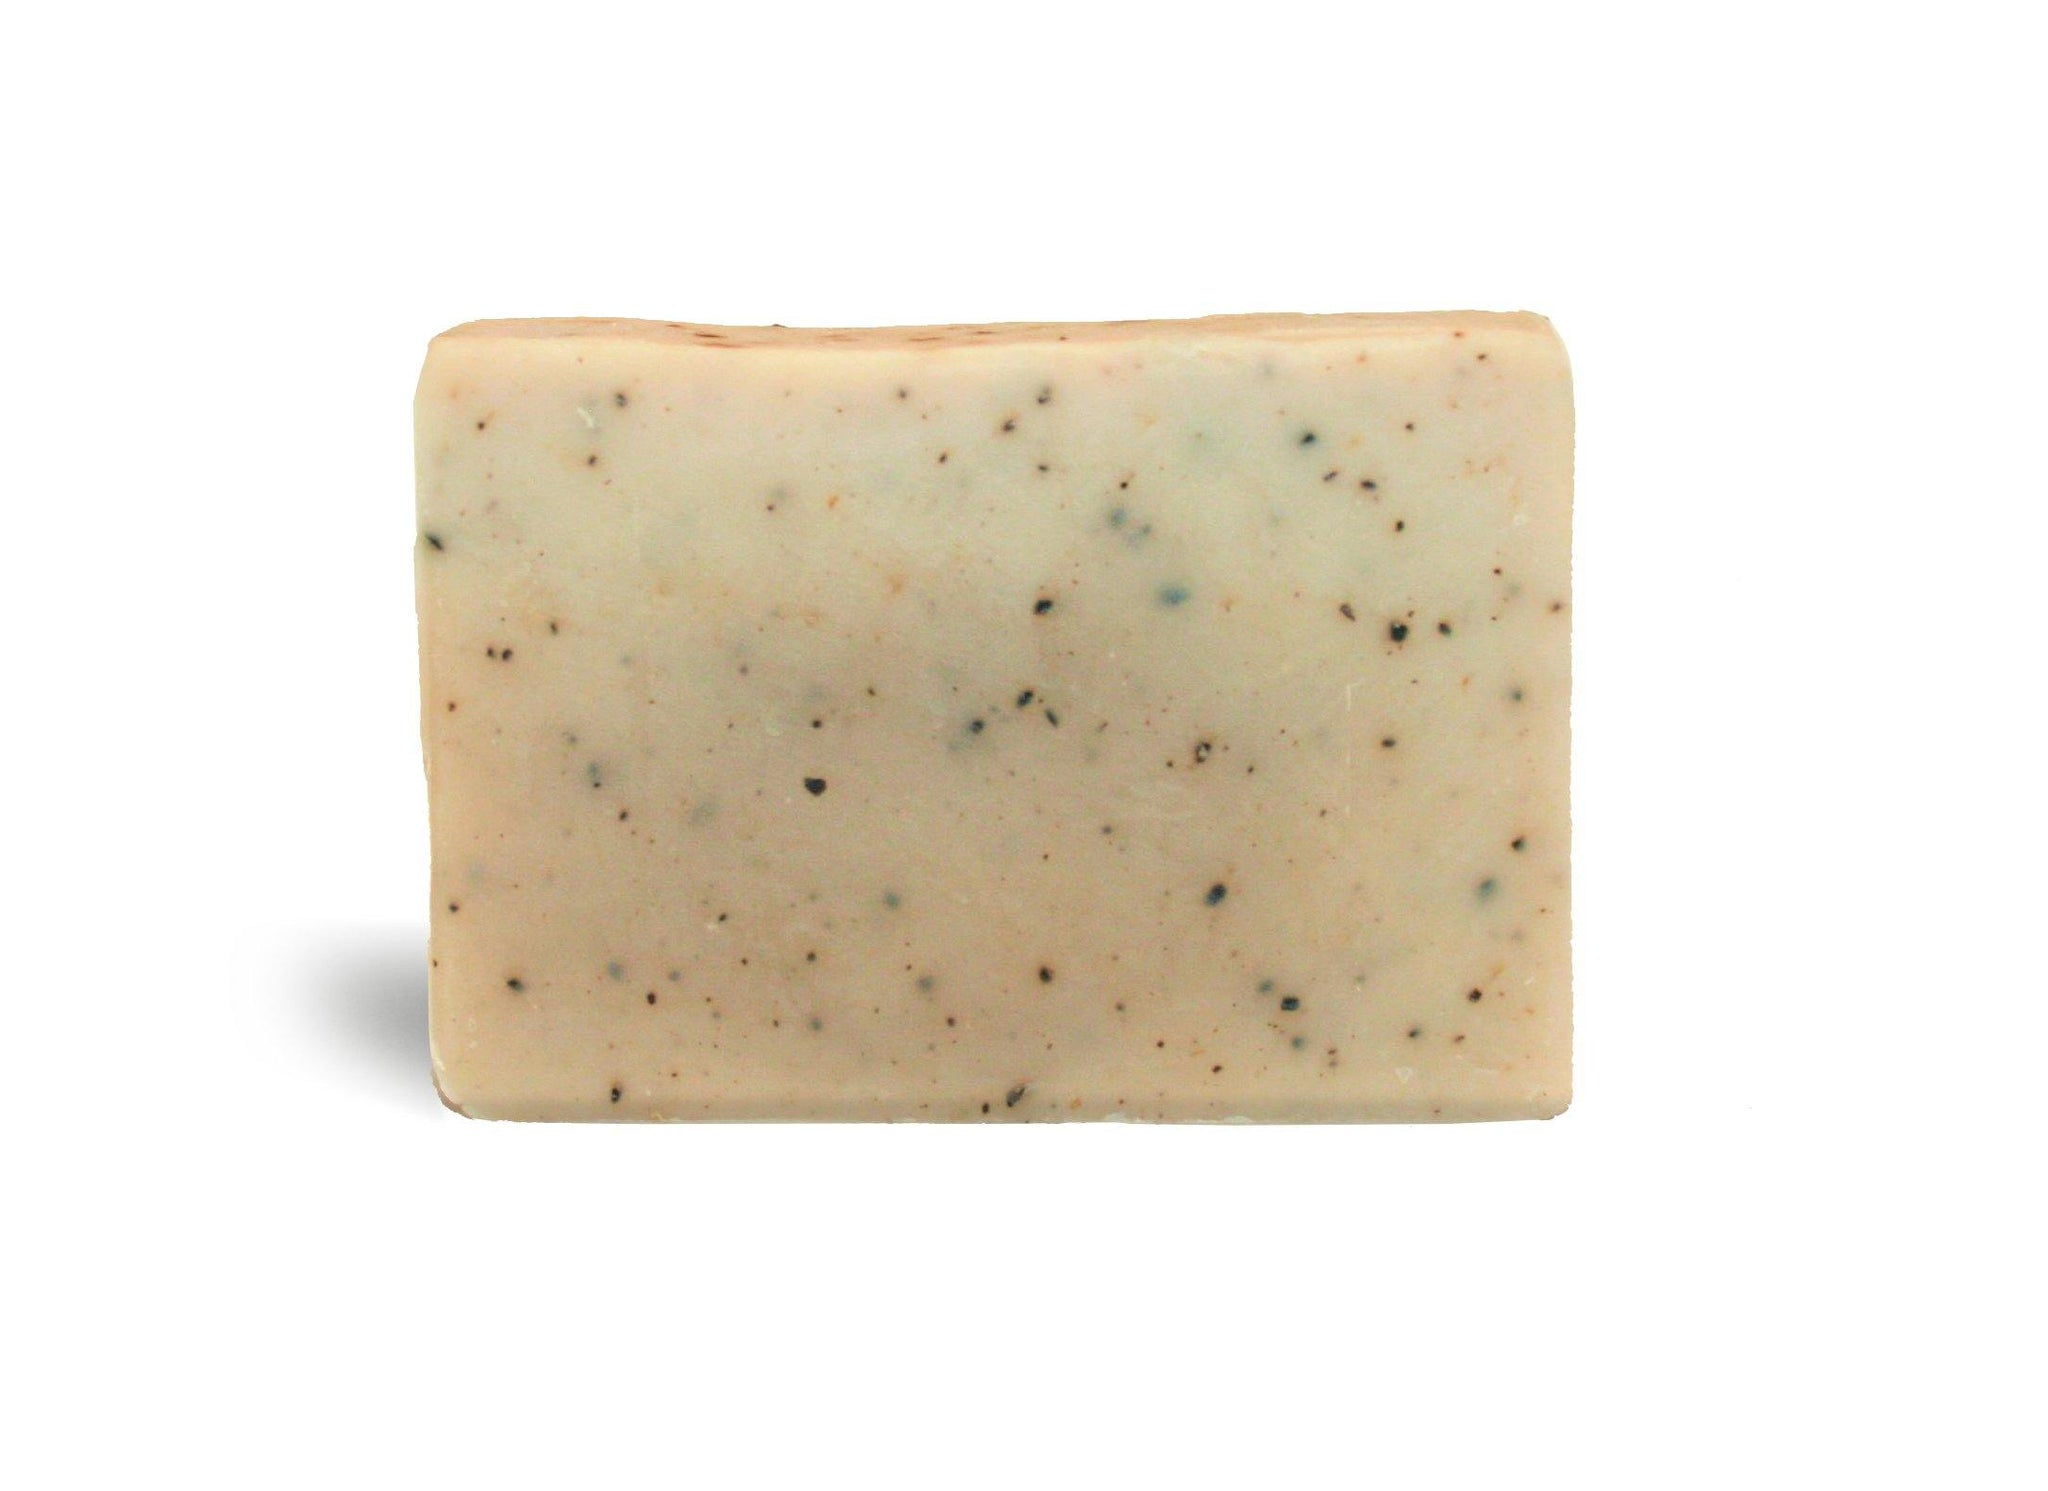 Wonderbar Exfoliation - MINT - Java Skin Care Body and Skin Care